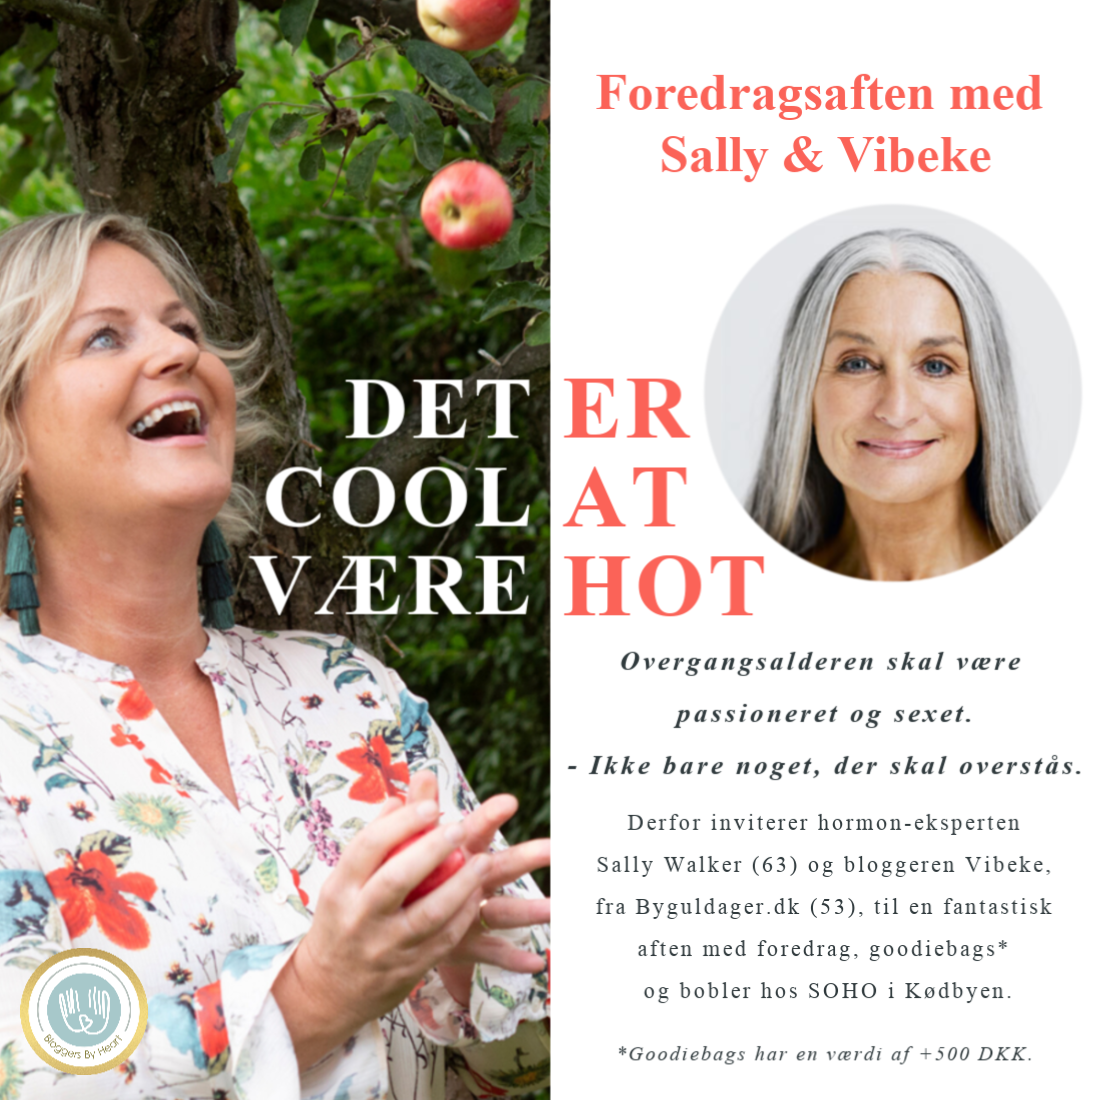 Det er cool at være hot